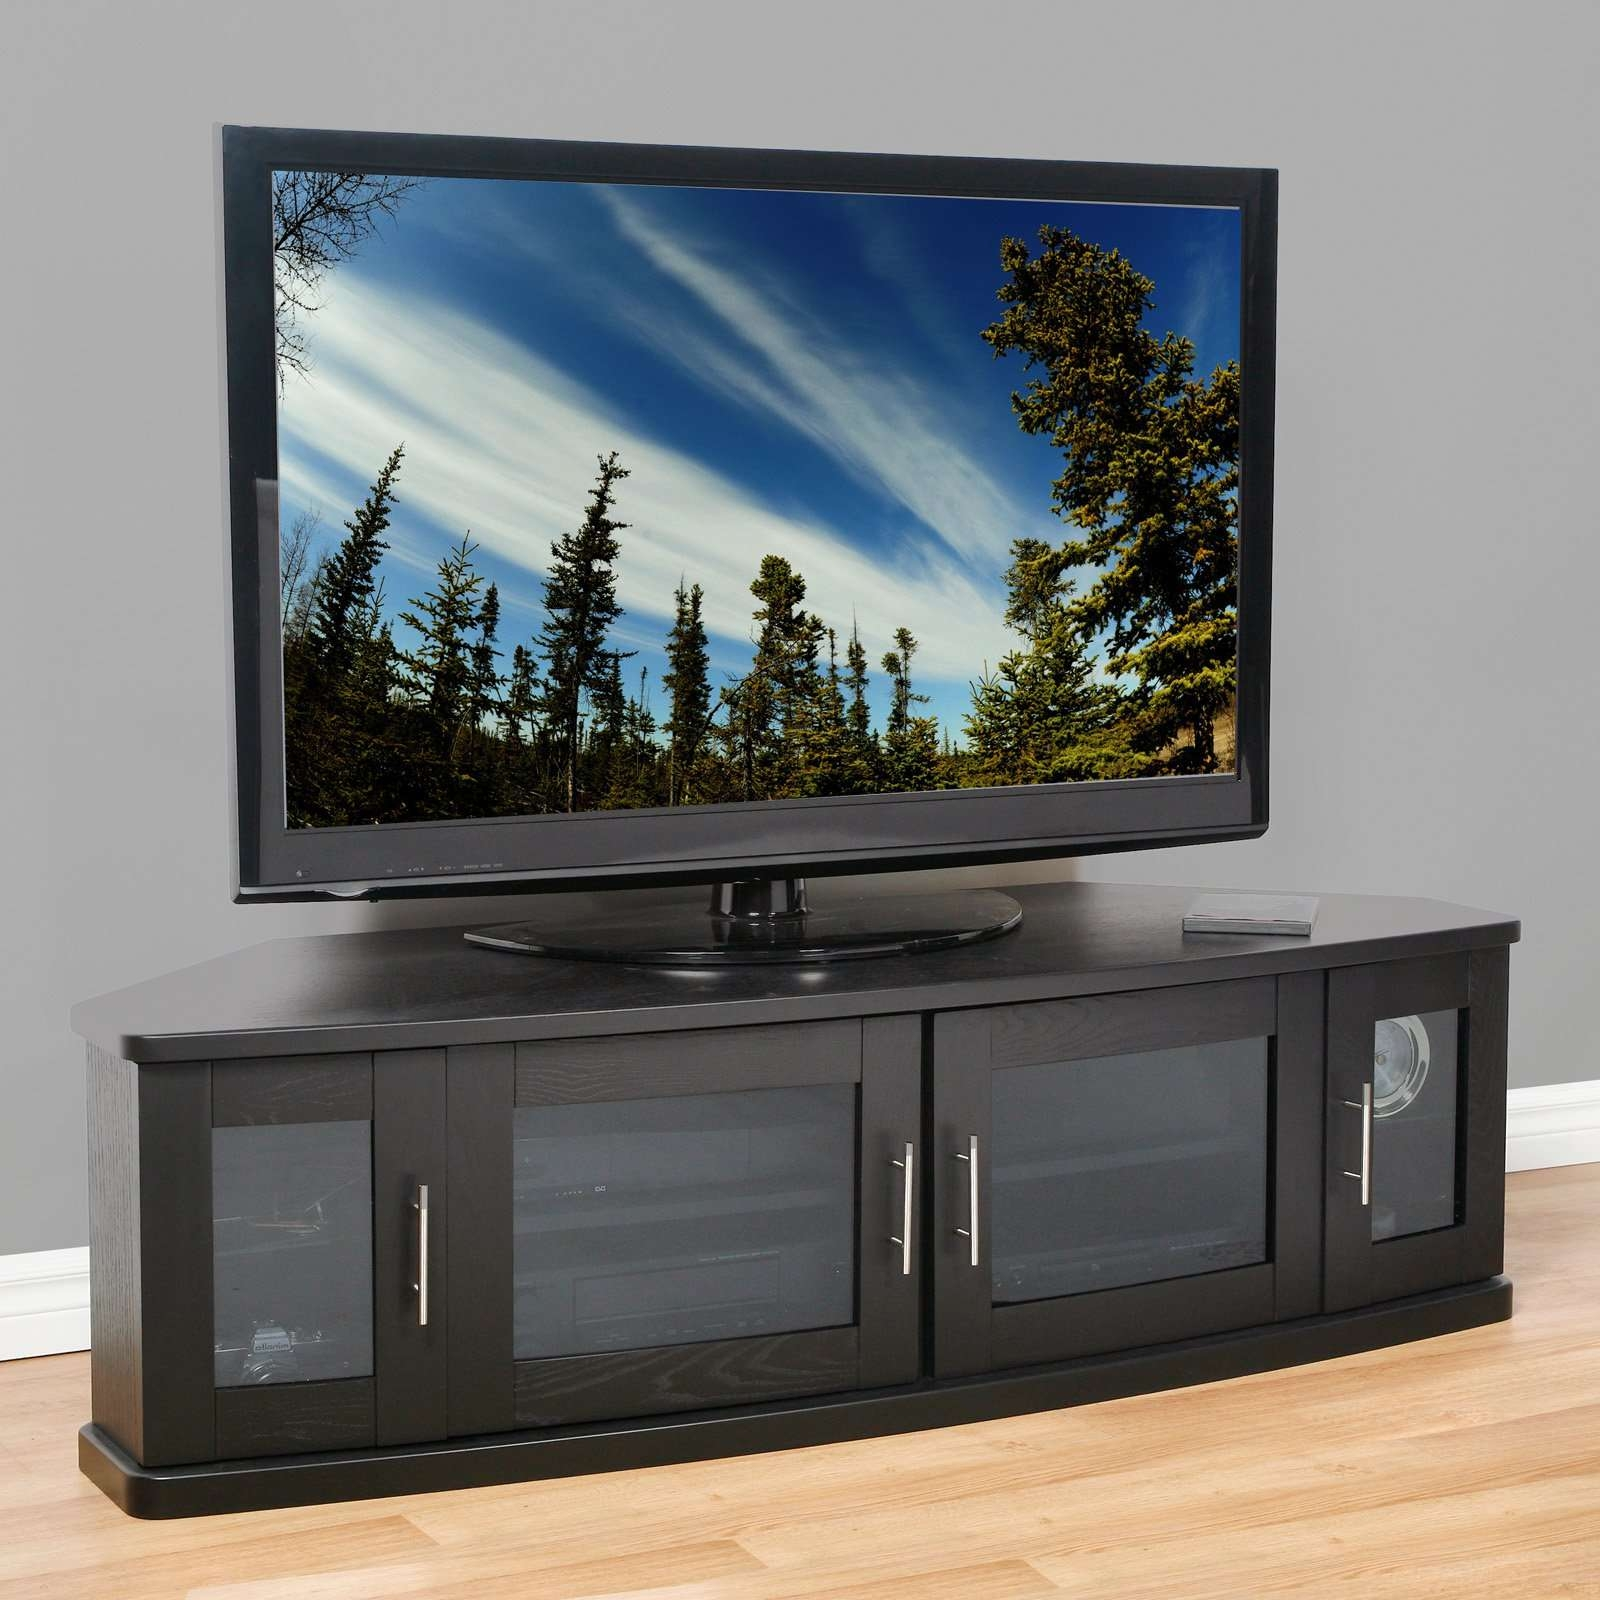 Modern Black Wooden Tv Stand With Frosted Glass Doors Of Dazzling Within Black Tv Stands With Glass Doors (View 8 of 15)